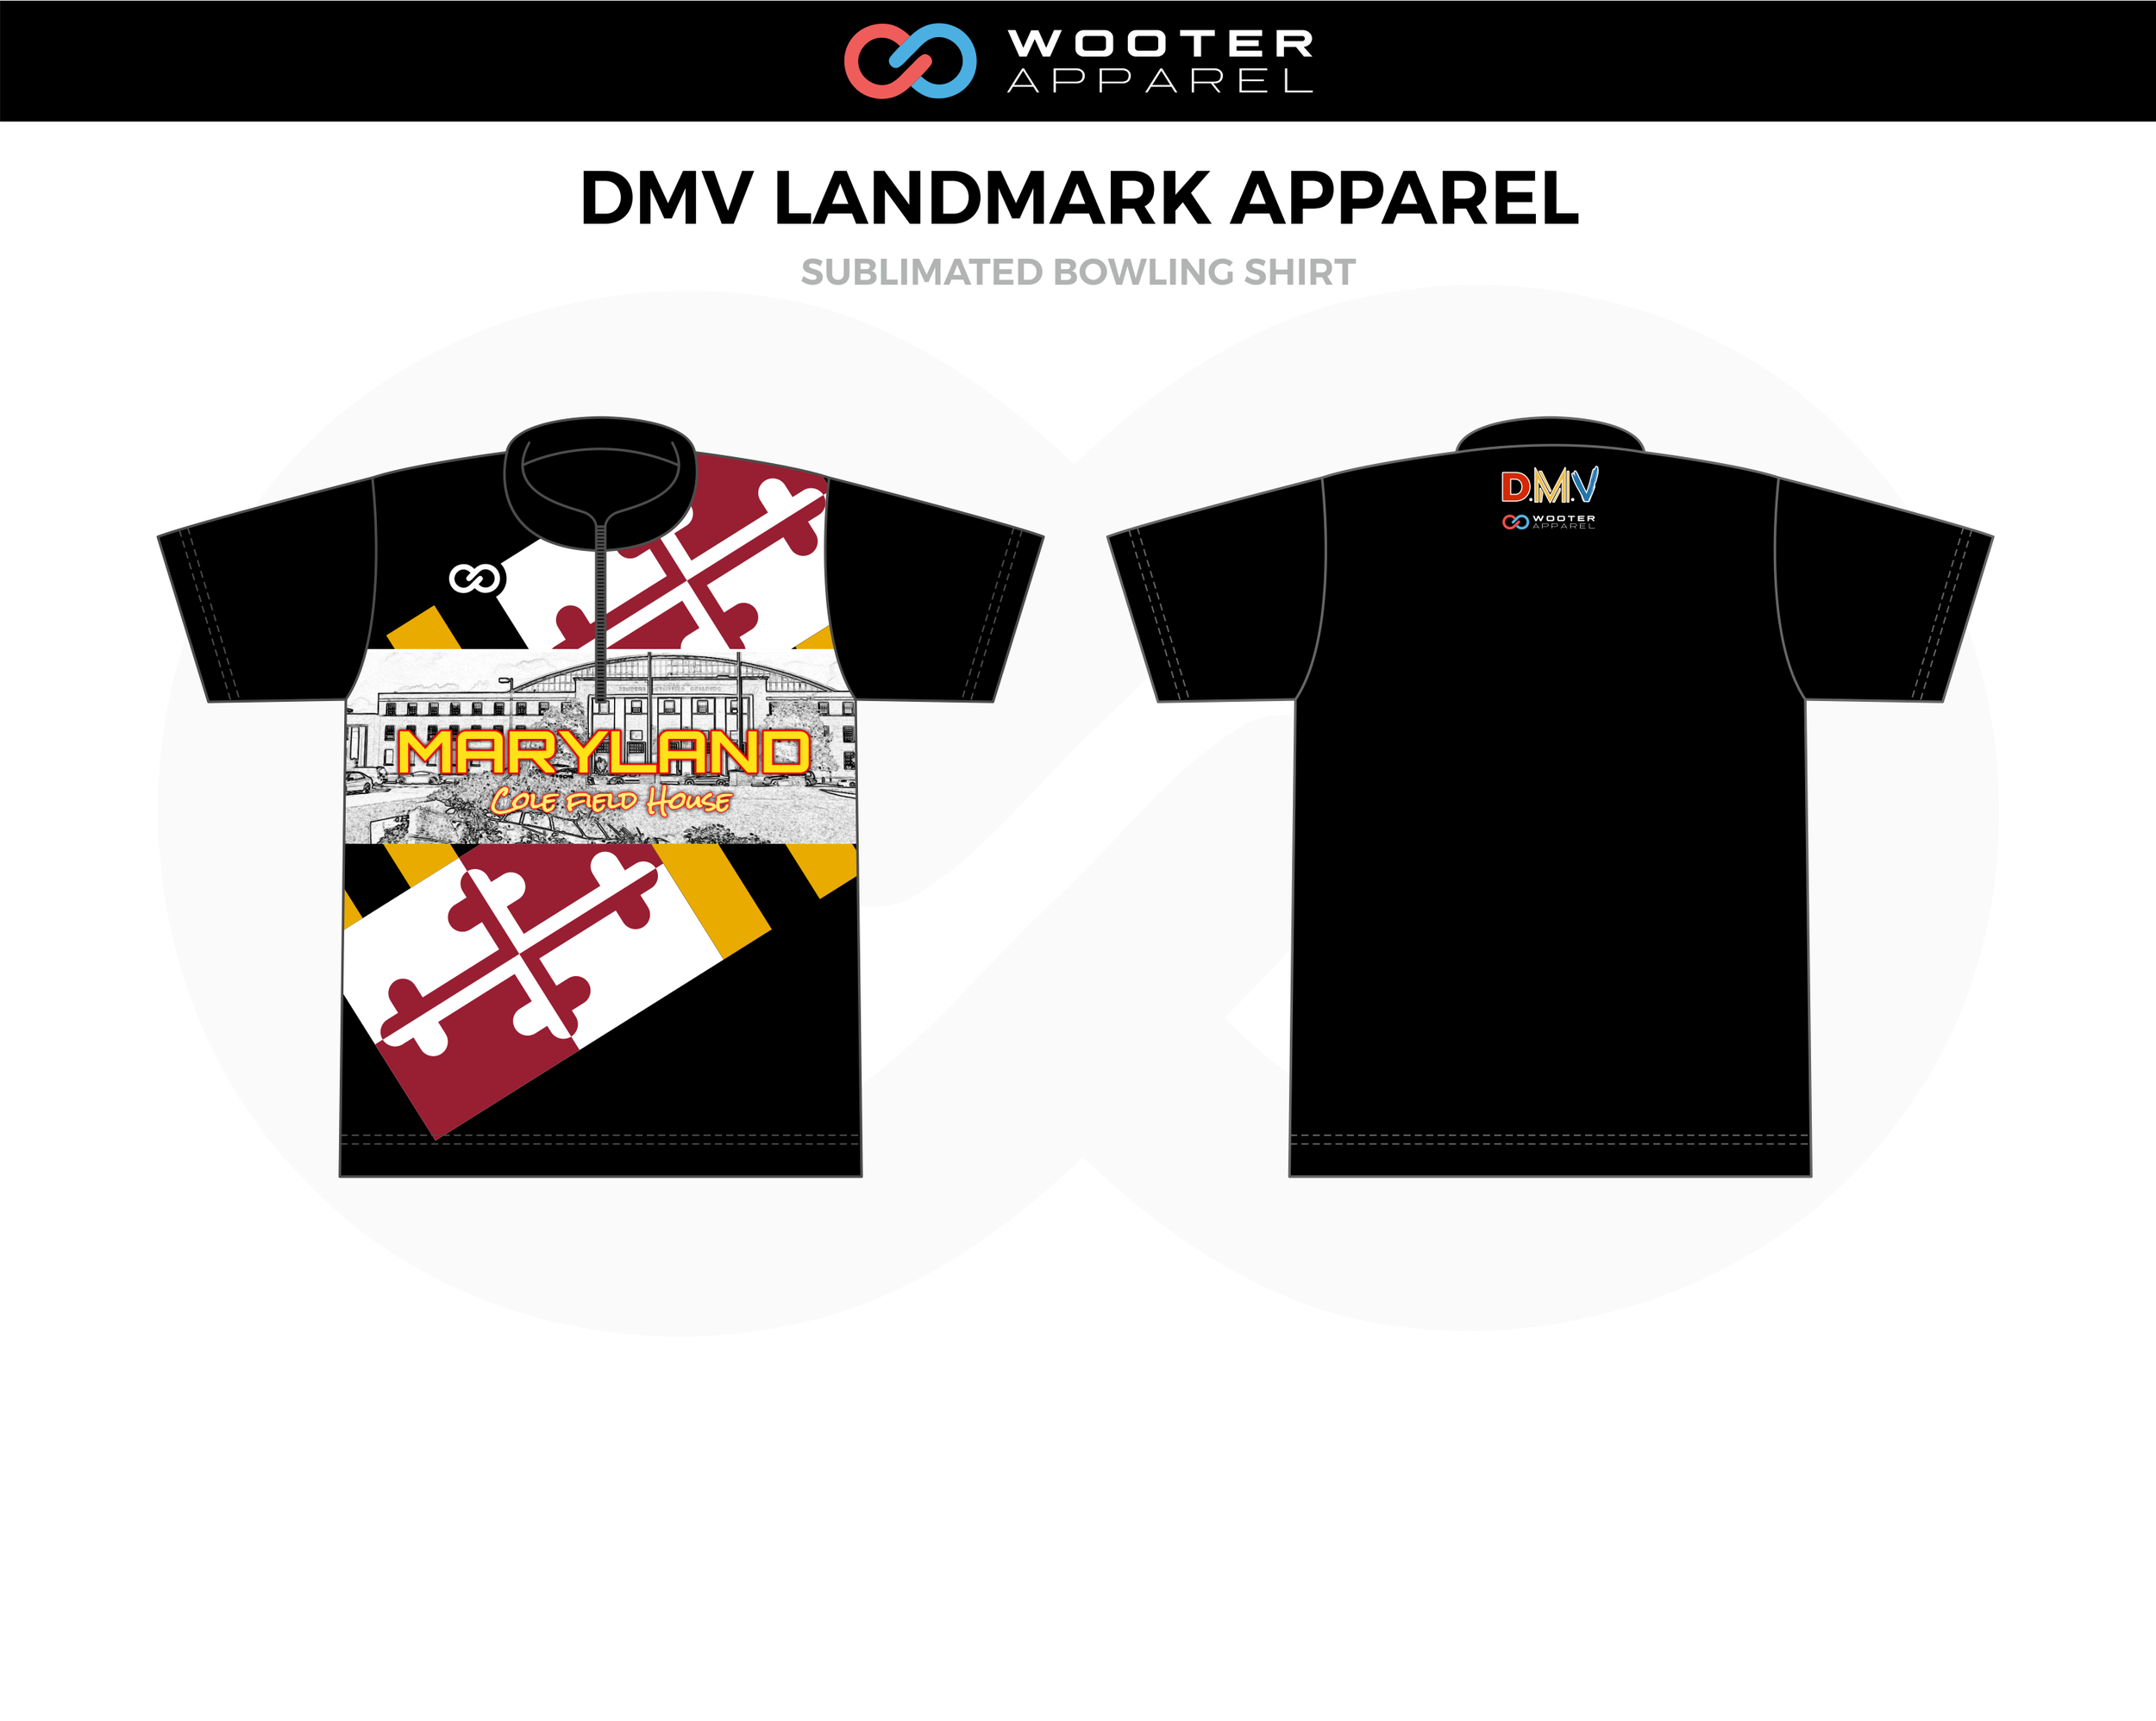 06_DMV Landmark Apparel v5.png